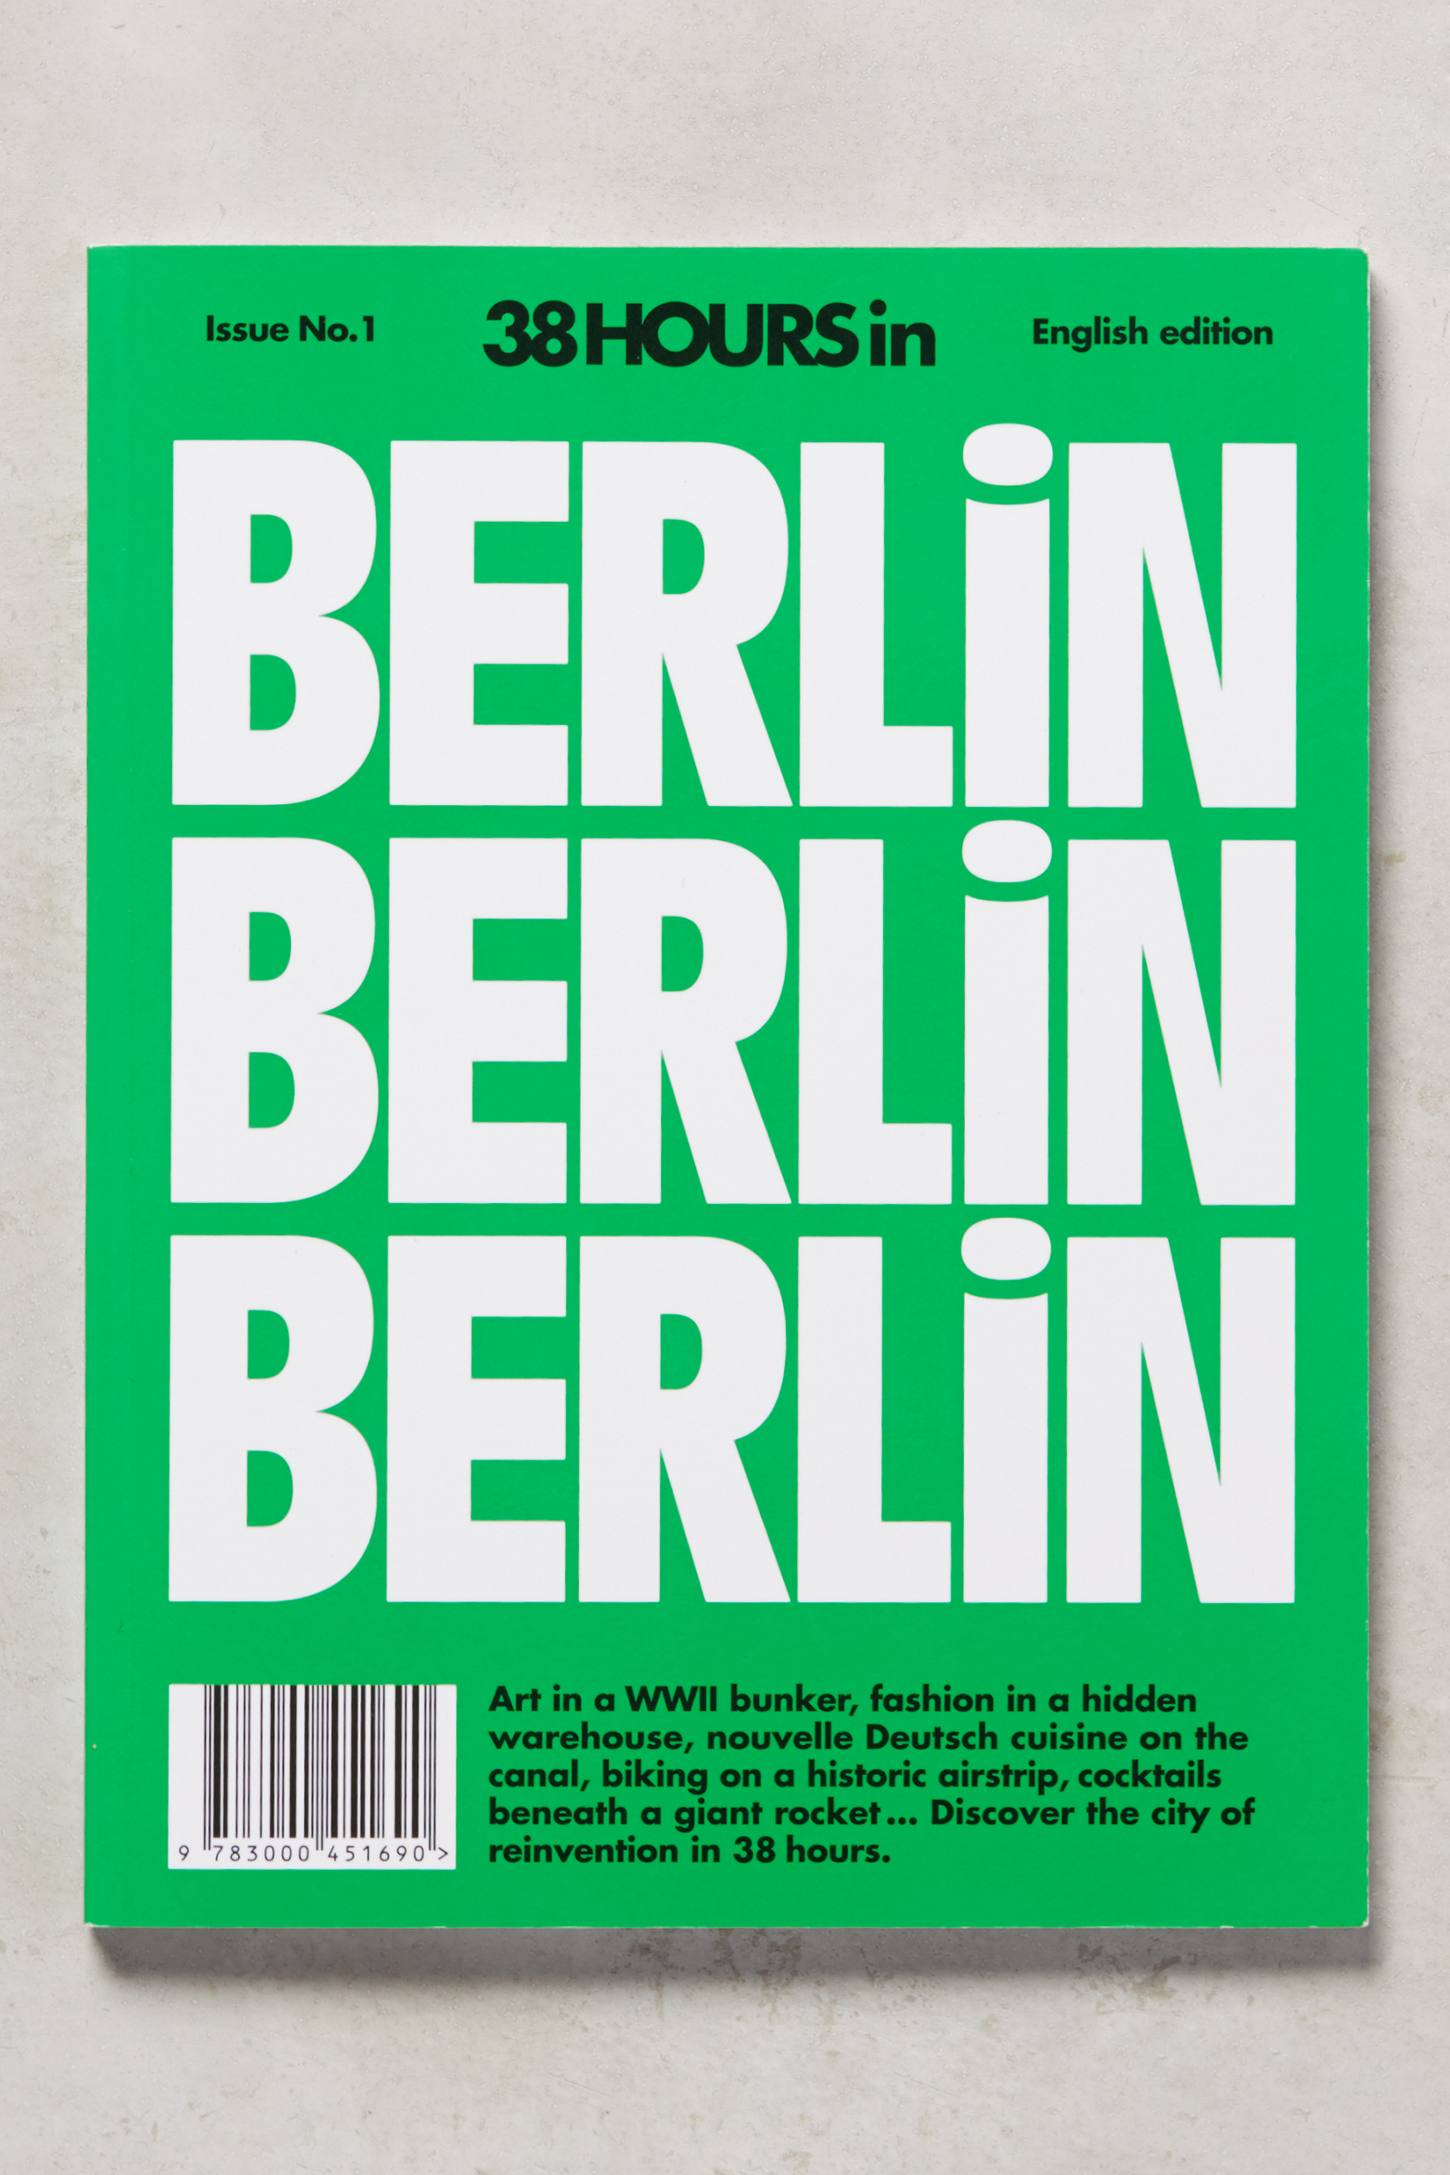 38HOURS Travel Guide Berlin